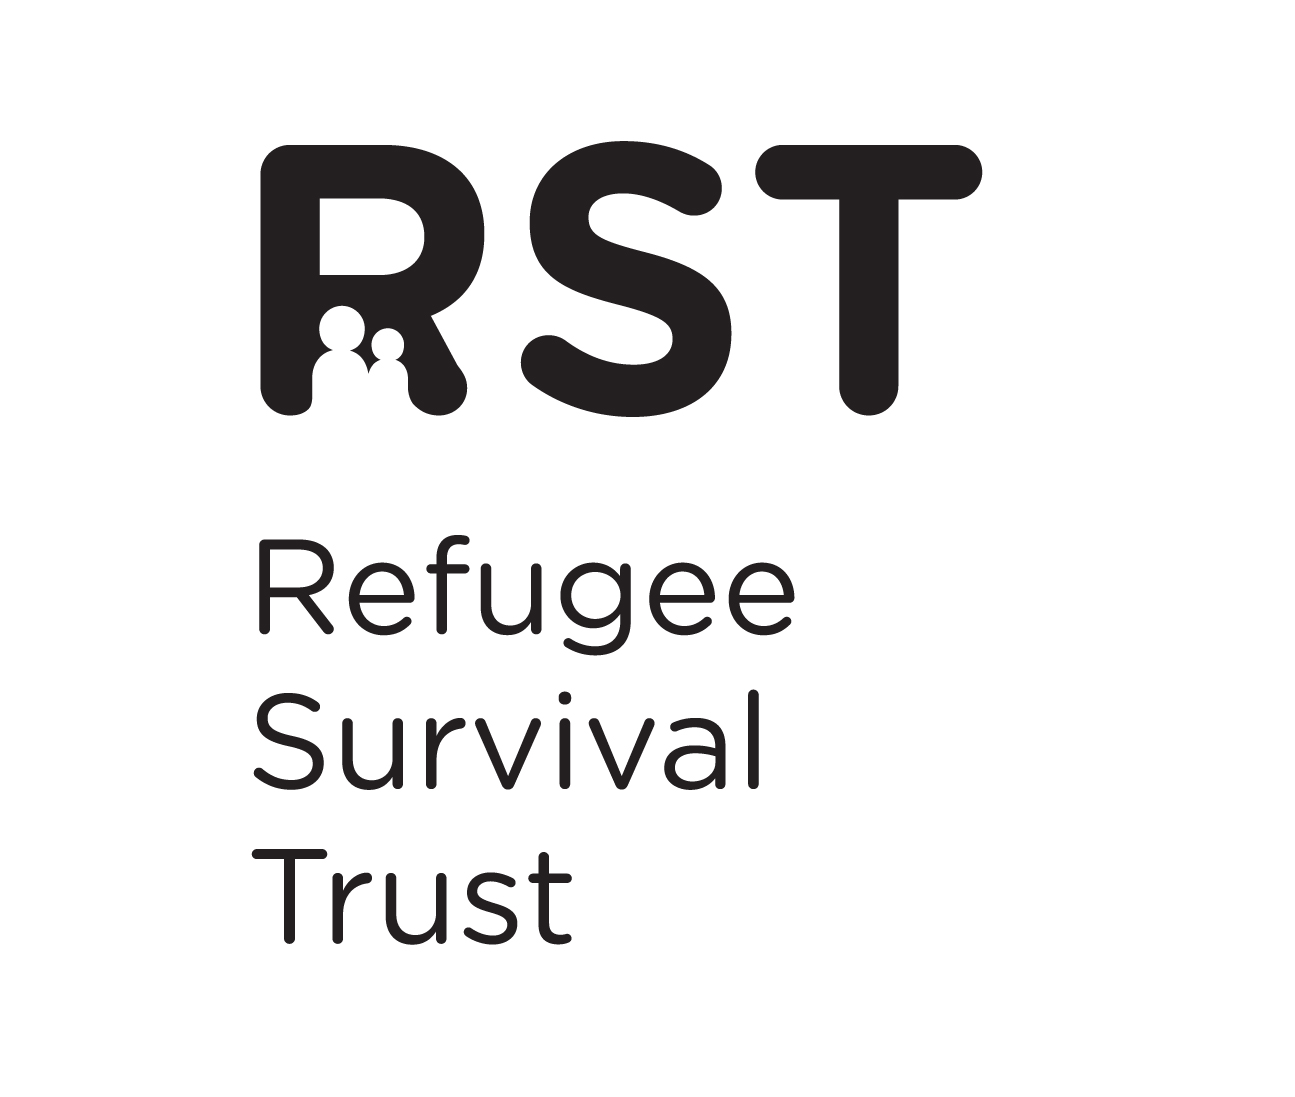 Refugee Survival Trust